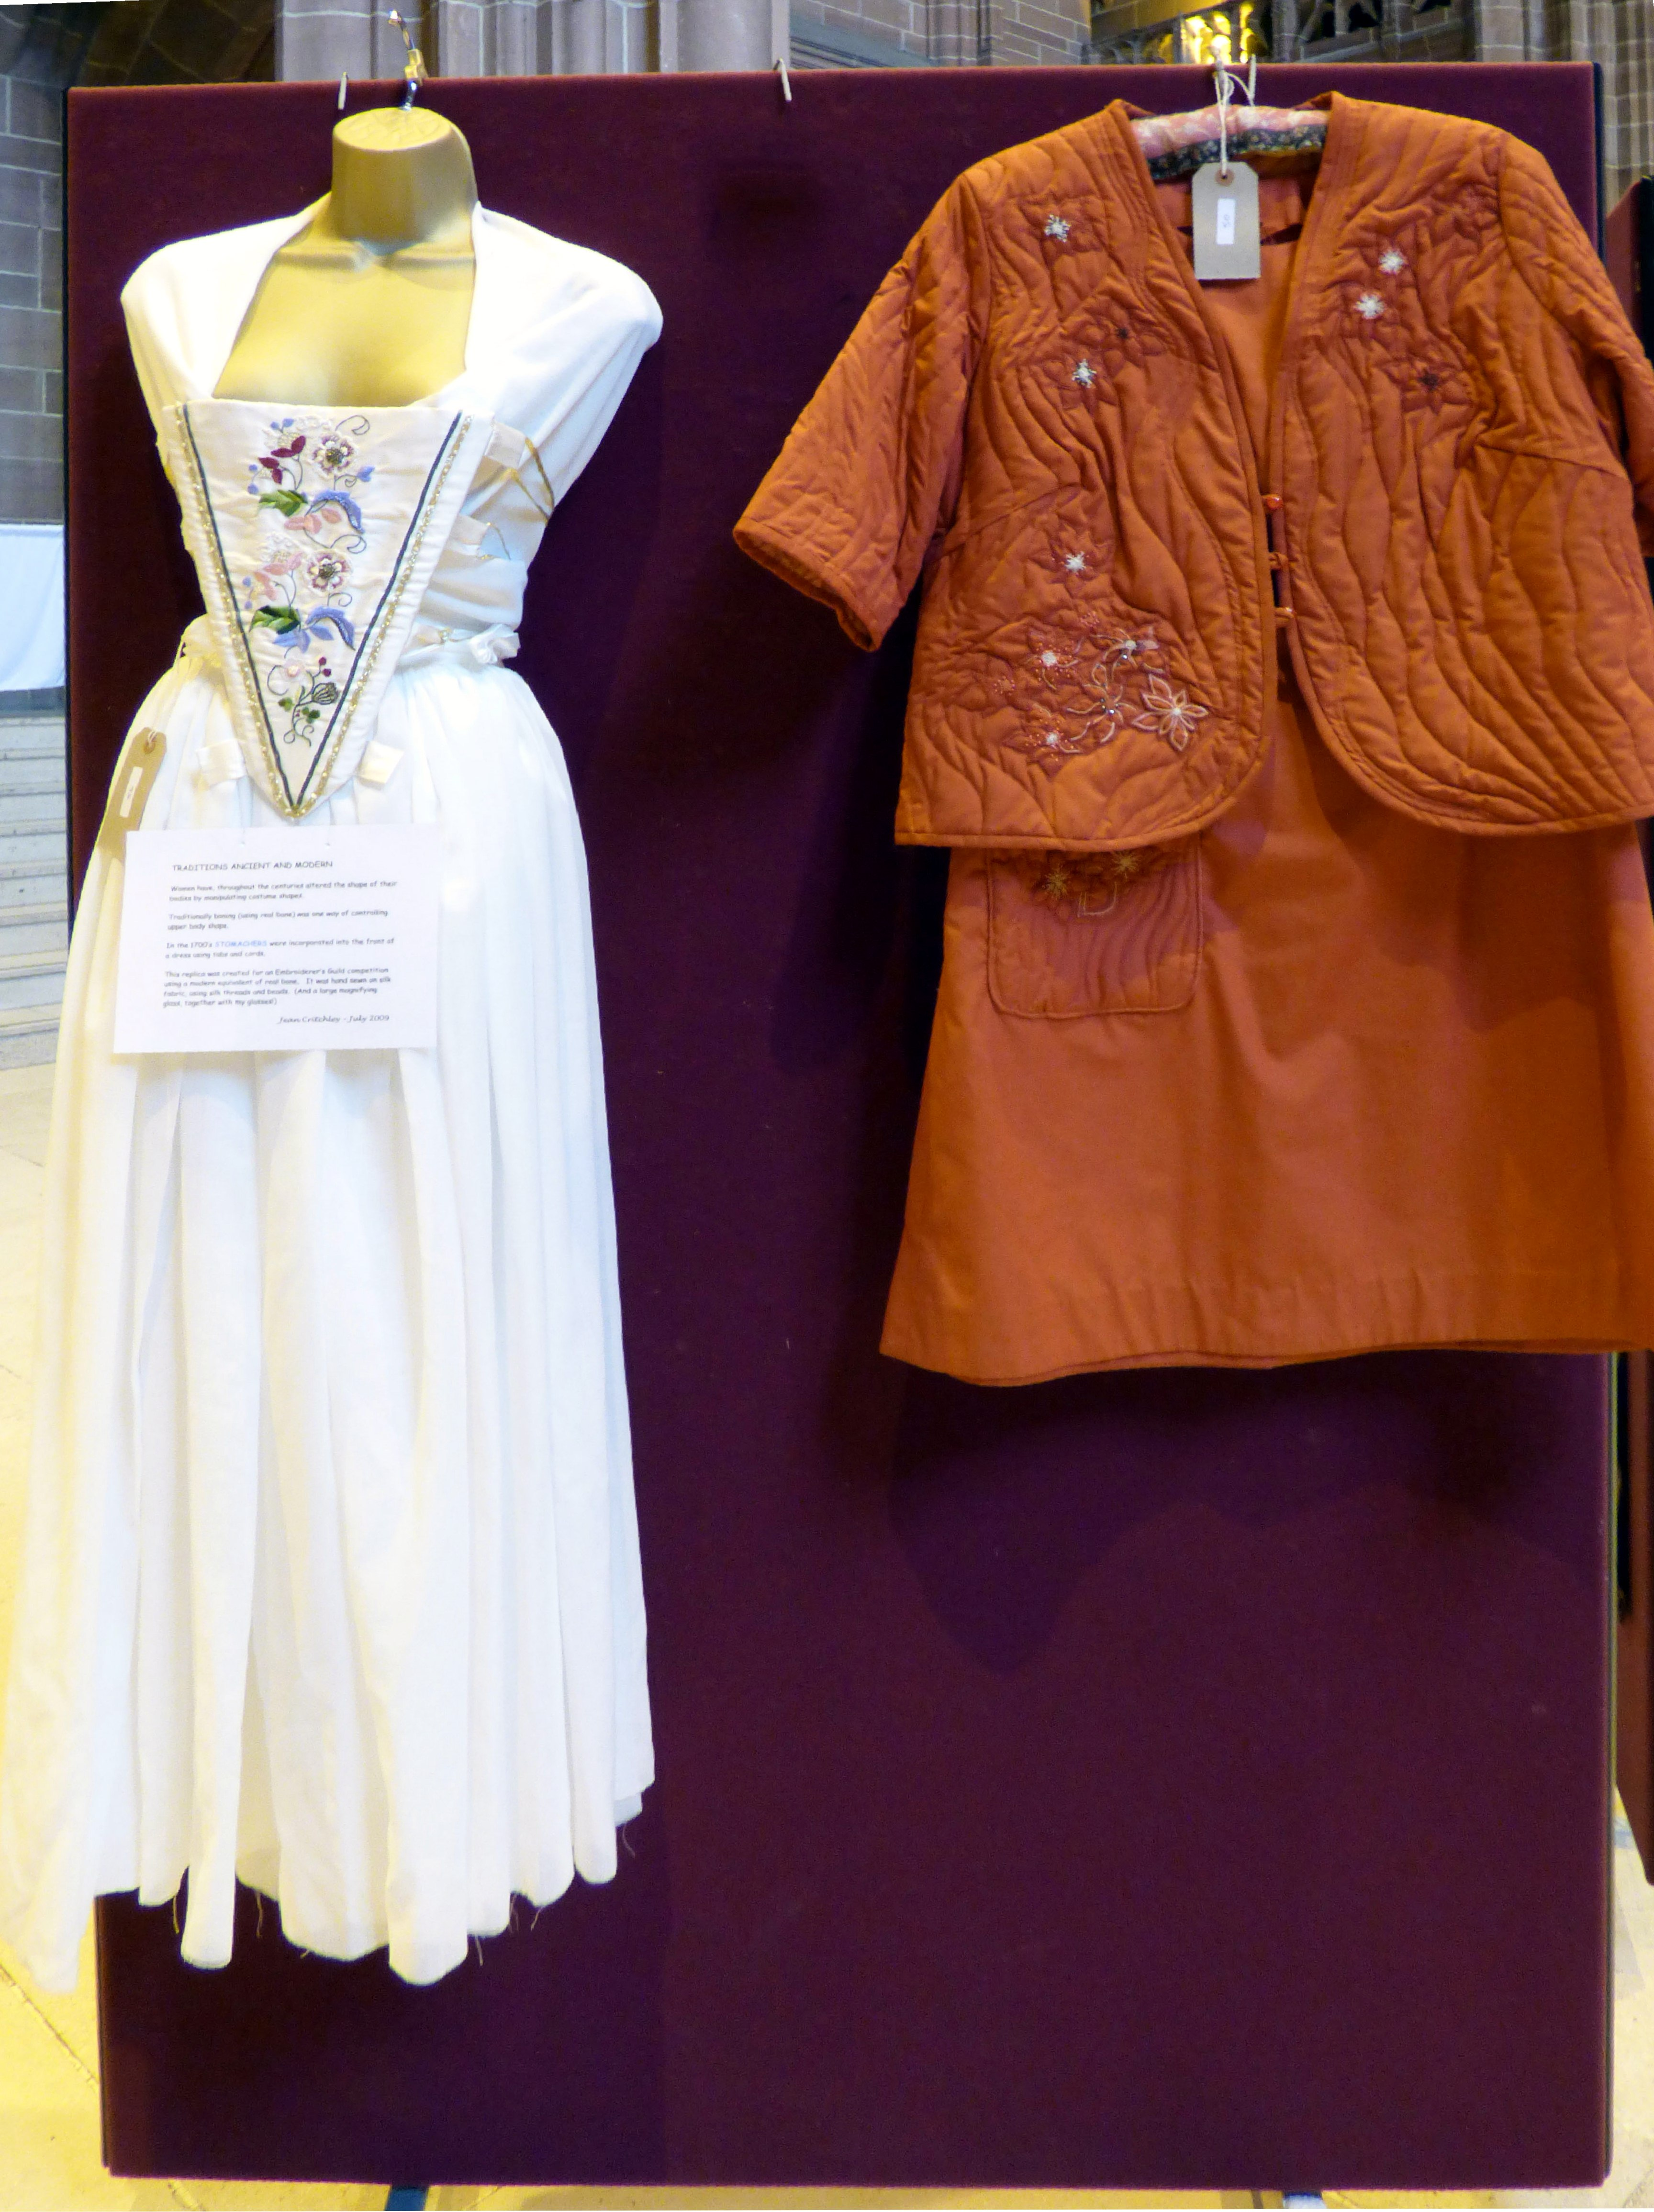 STOMACHER by Jean Critchley and DRESS AND JACKET by Dora Carline at 60 Glorious Years exhibition 2016